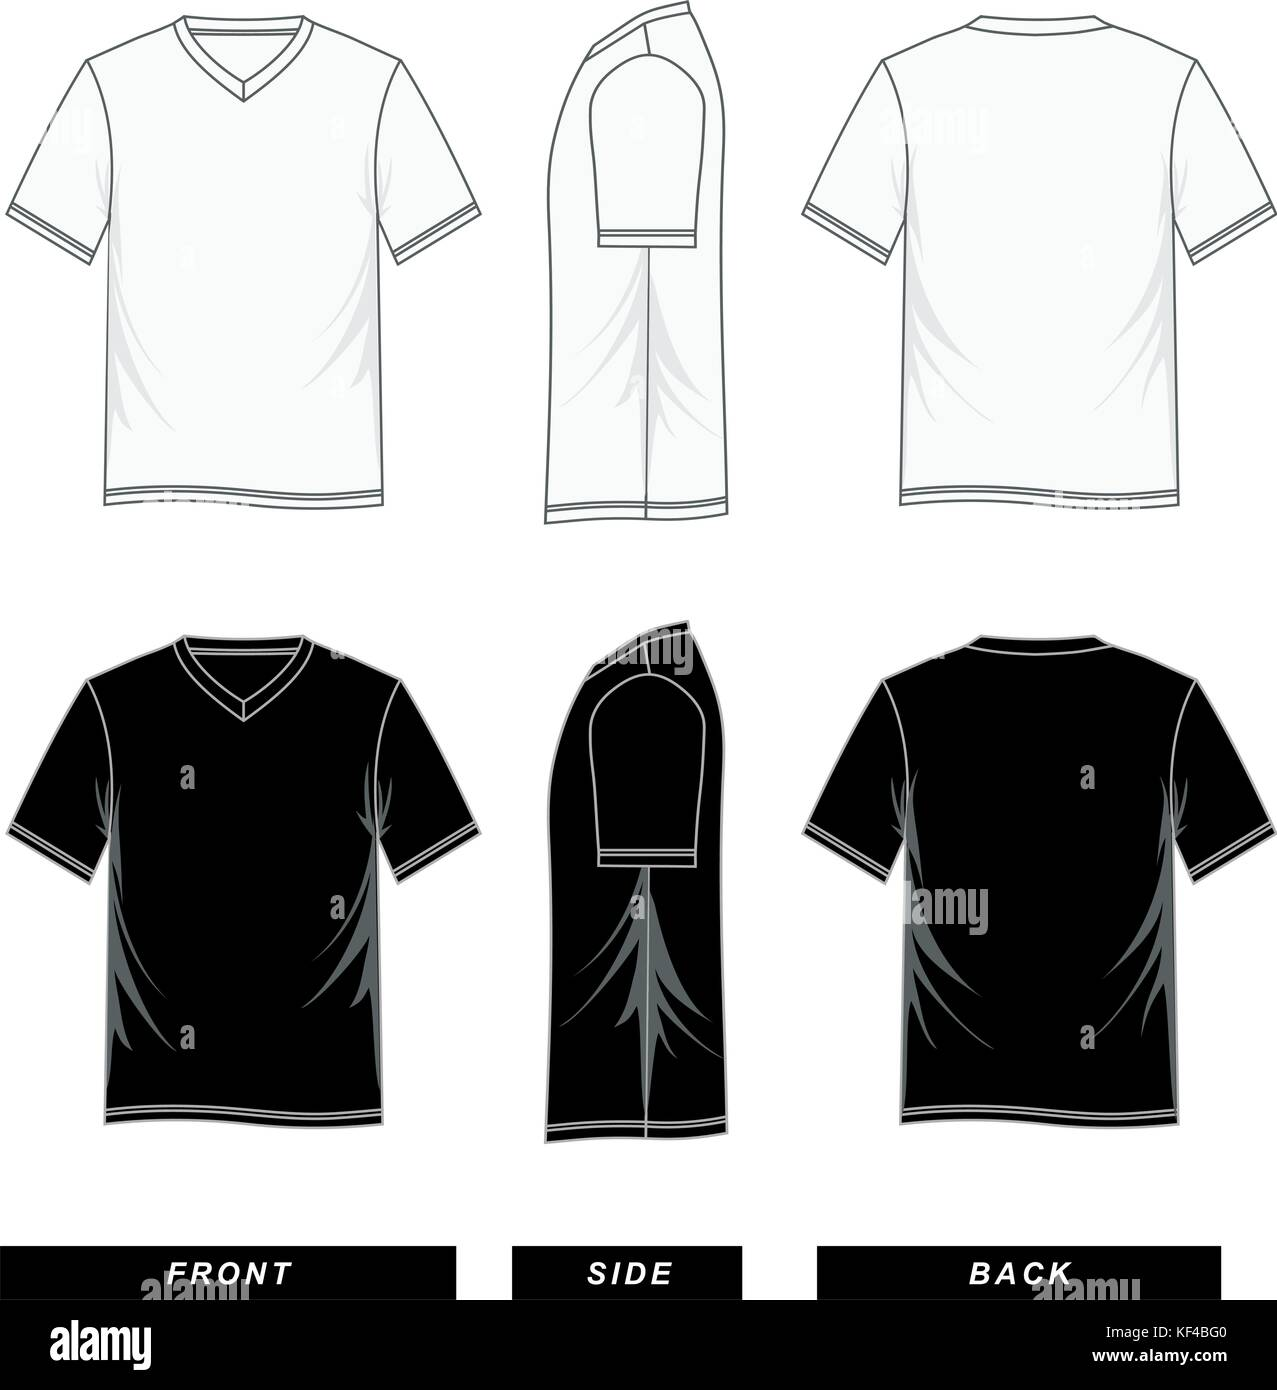 d4a621ed5 T shirt short sleeve V-neck templates colorful, men fashion, Vector image.  Available for any project